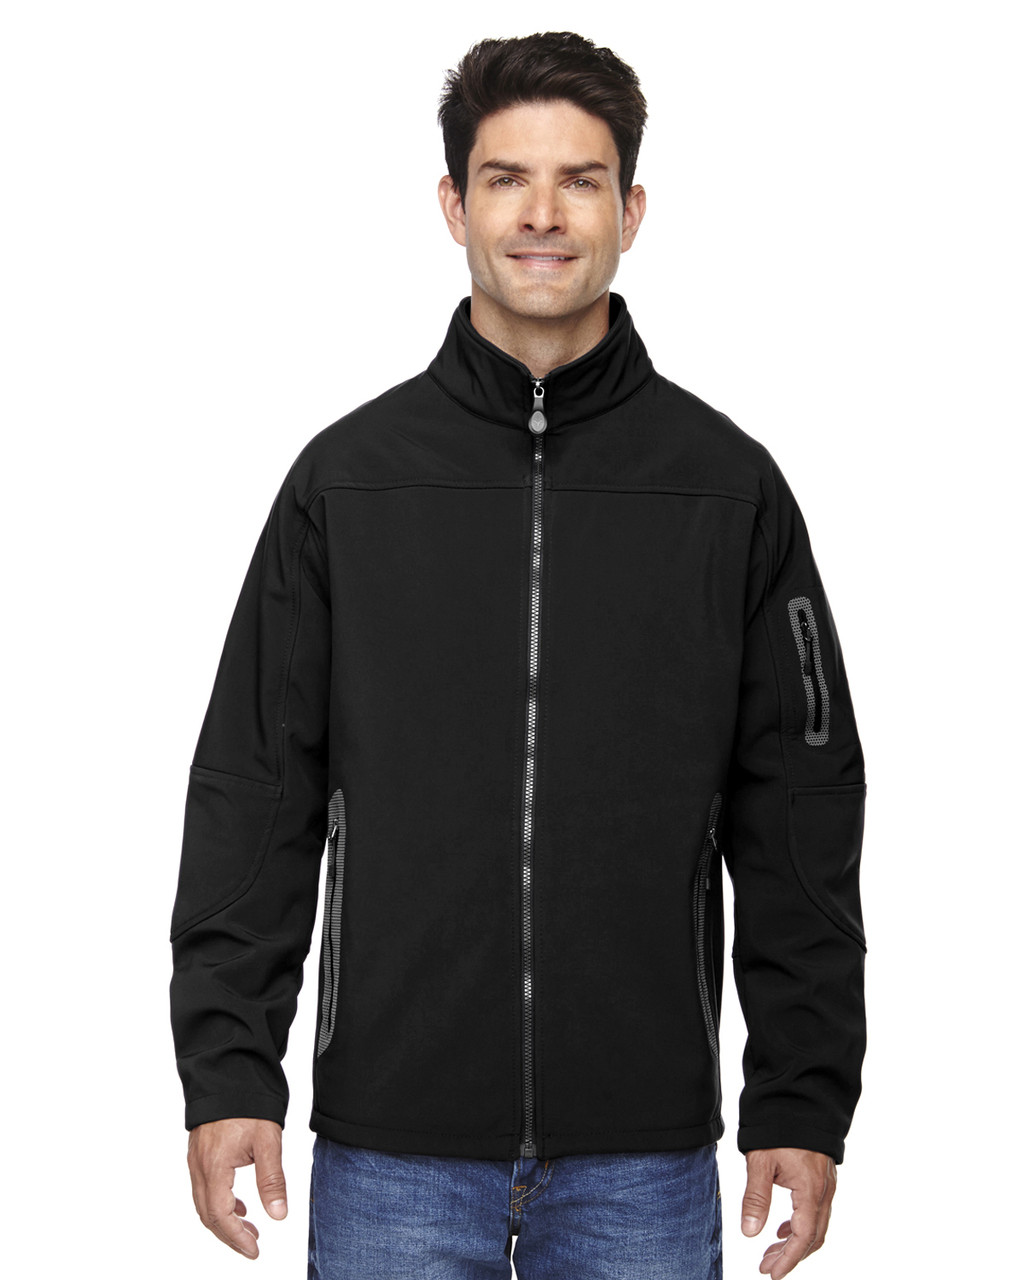 Black - 88138 North End Men's Soft Shell Technical Jacket   Blankclothing.ca